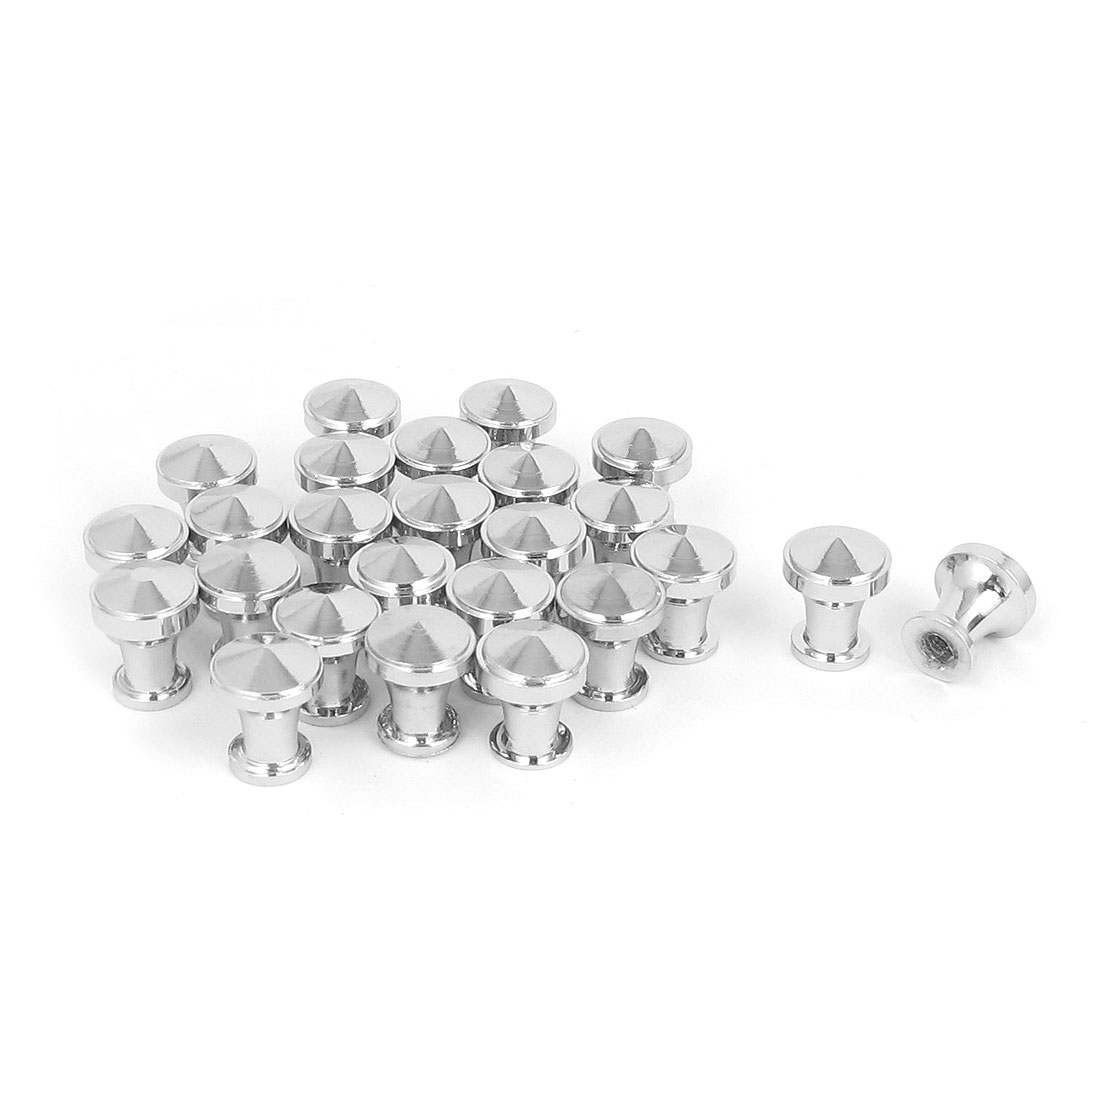 25 Pcs Silver Tone Round Cabinet Drawer Metal Pull Knob Handle Grip 12mm Dia